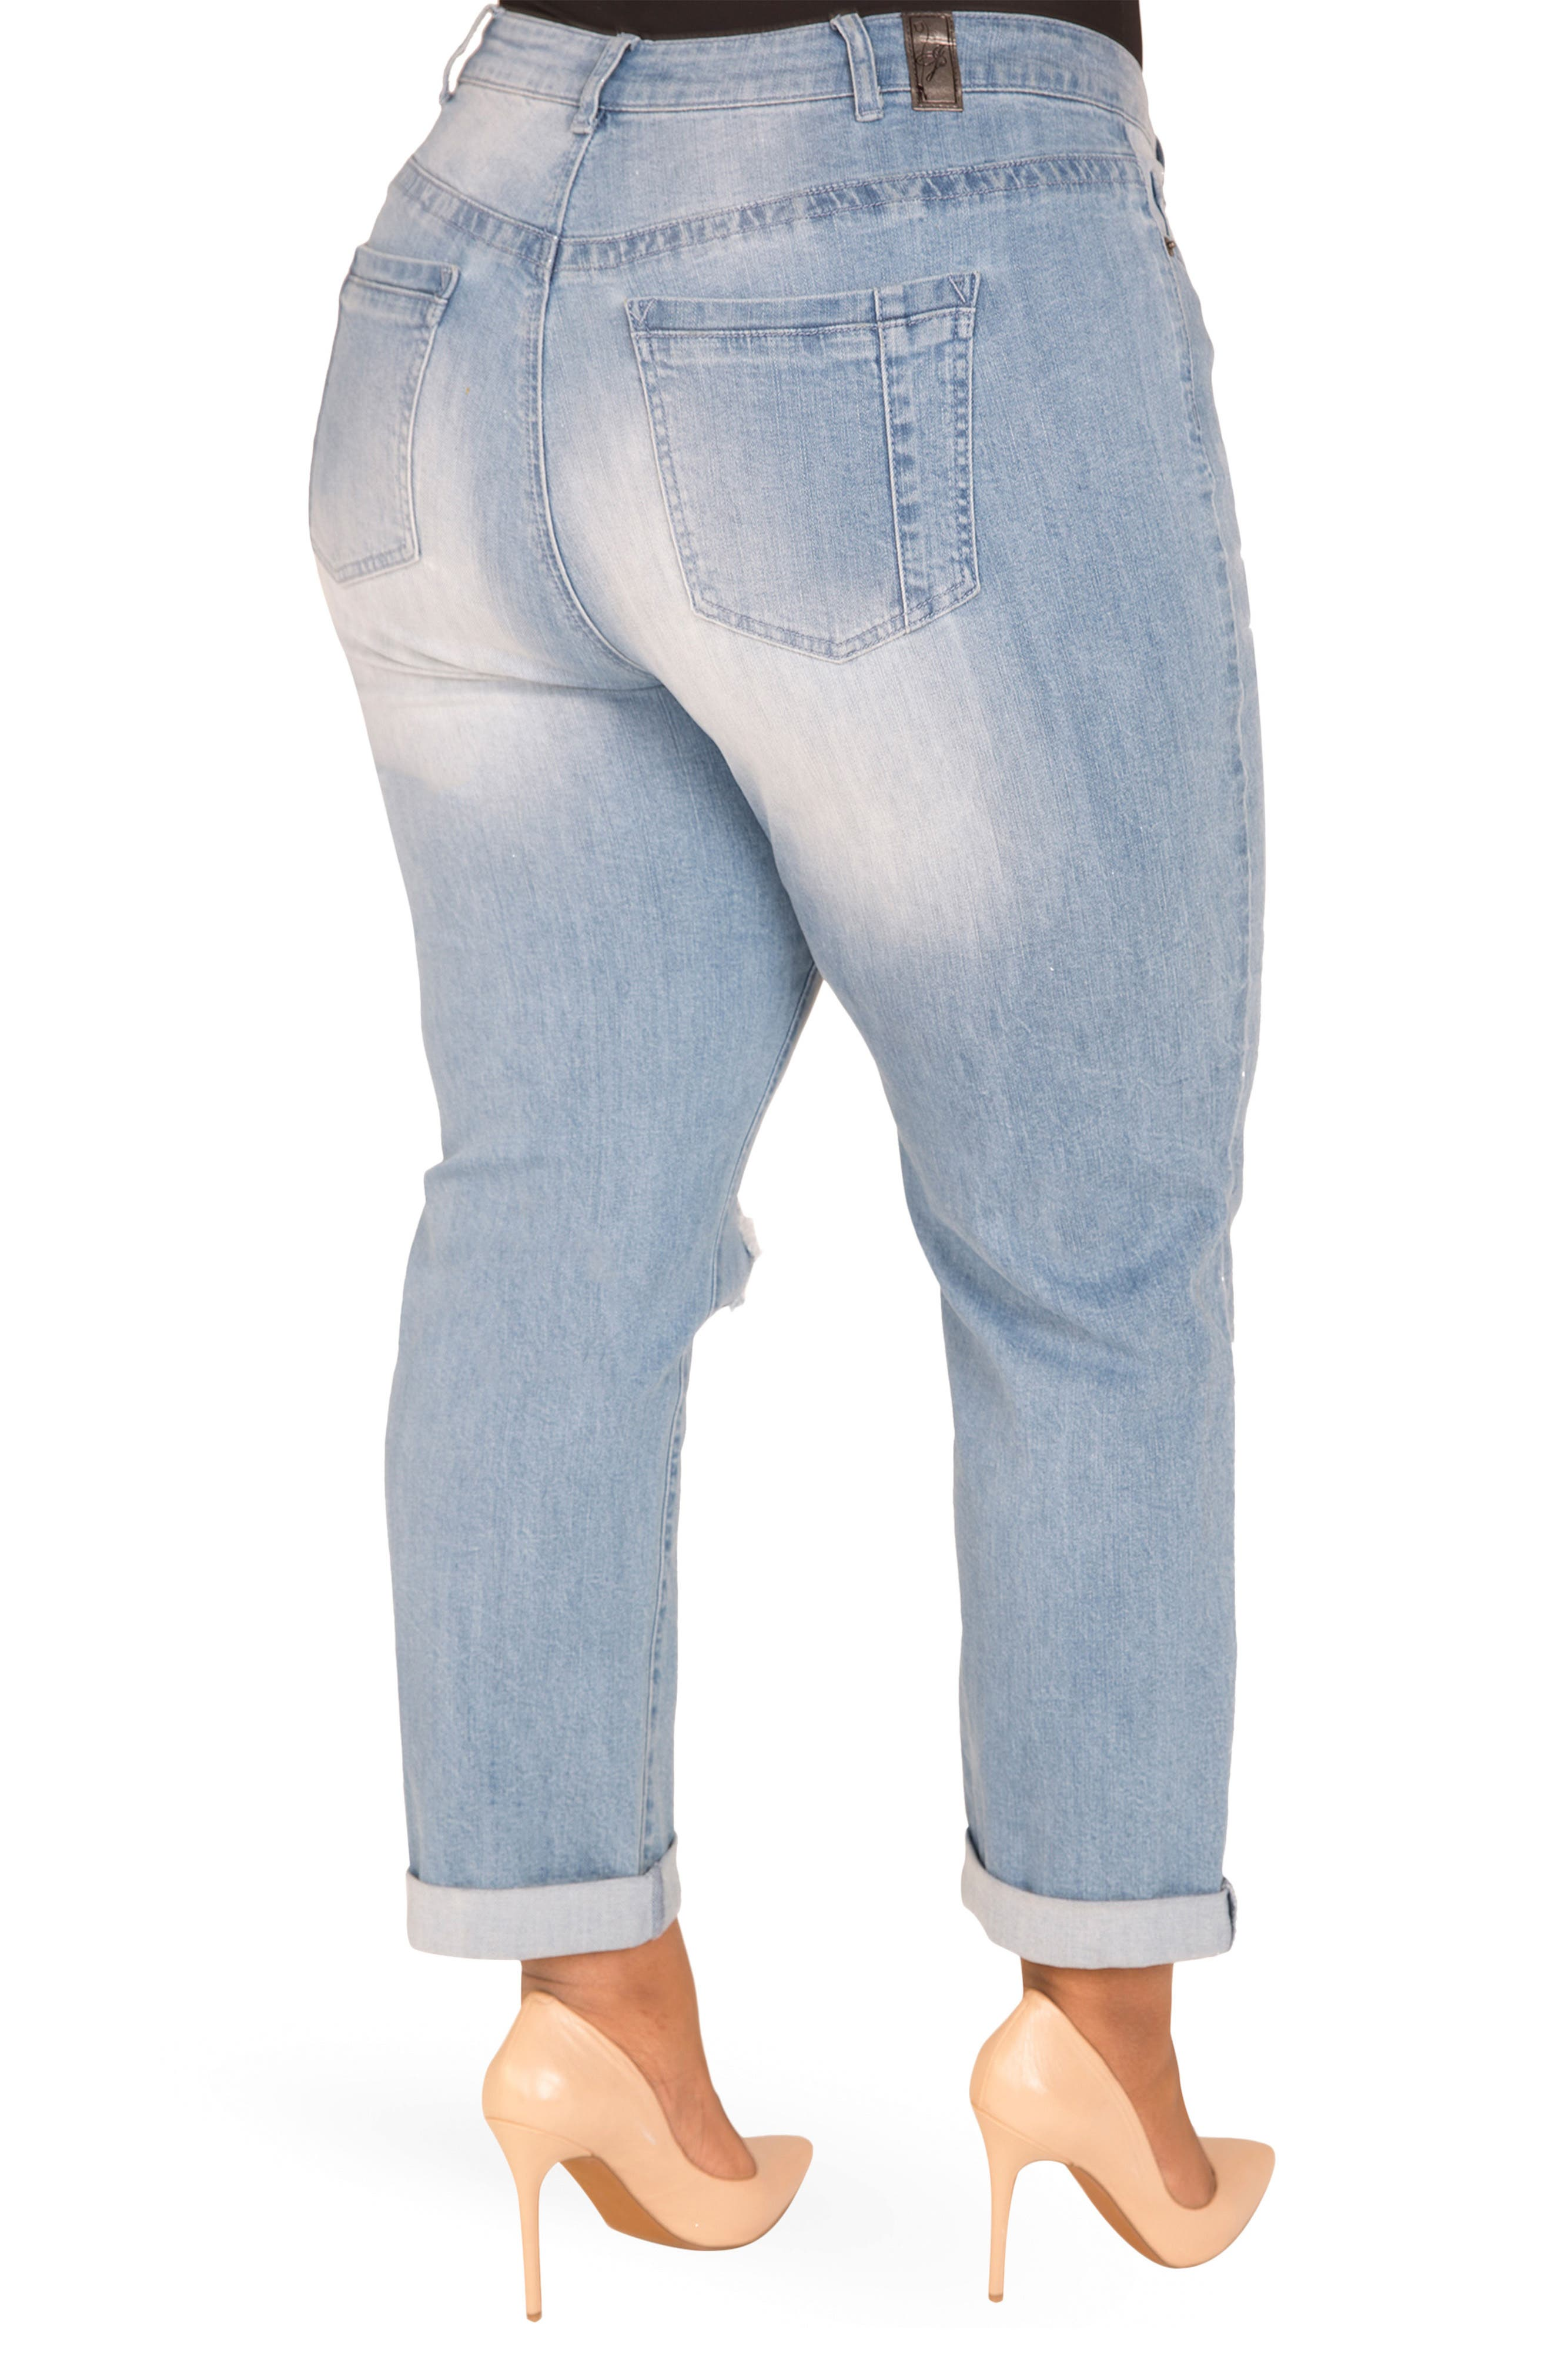 Verla Destroyed Boyfriend Jeans,                             Alternate thumbnail 2, color,                             LIGHT BLUE